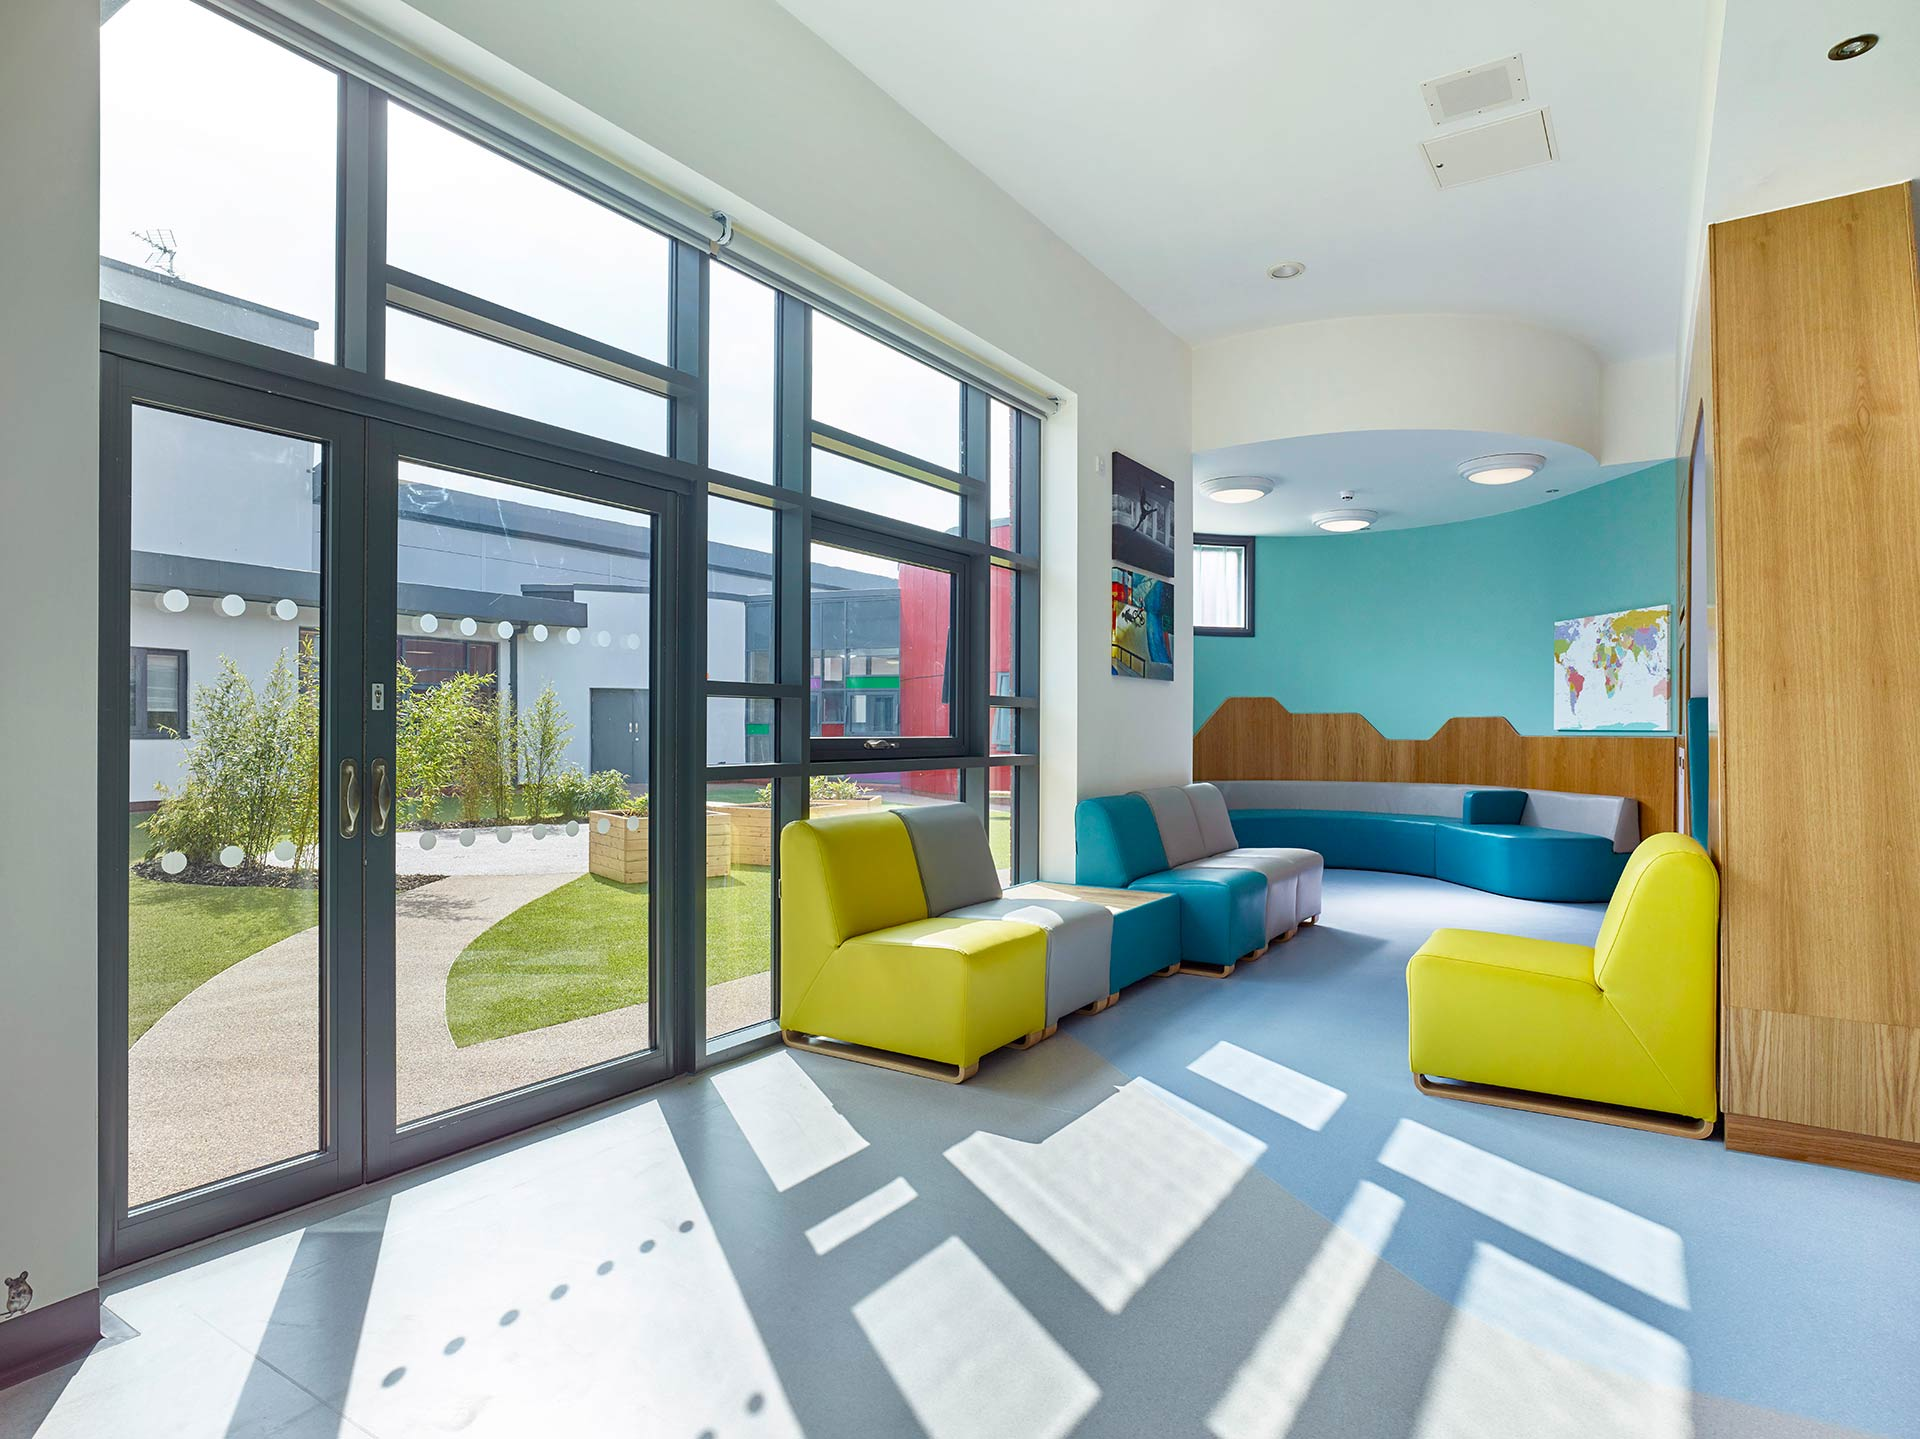 colours to inspire and promote rehabilitation for patients suffering with mental health